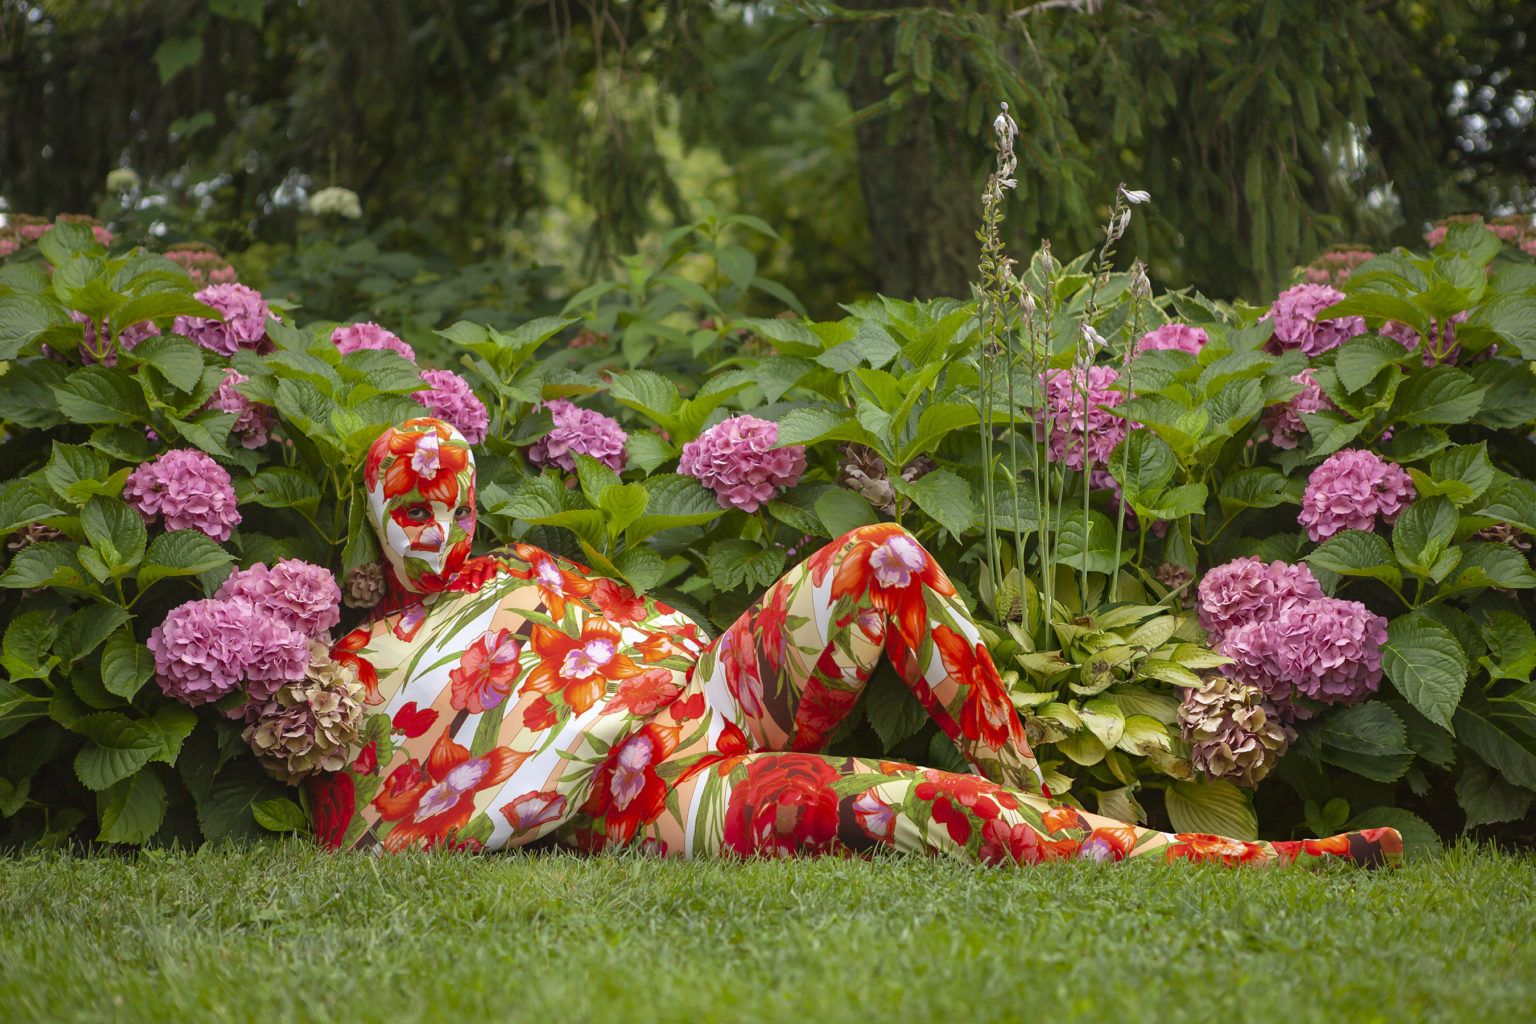 A figure wearing a tight body suit and head mask covered in a red and pink floral print reclines in cut grass, in front of blooms of purple flowers. Only the eyes of the figure are visible.